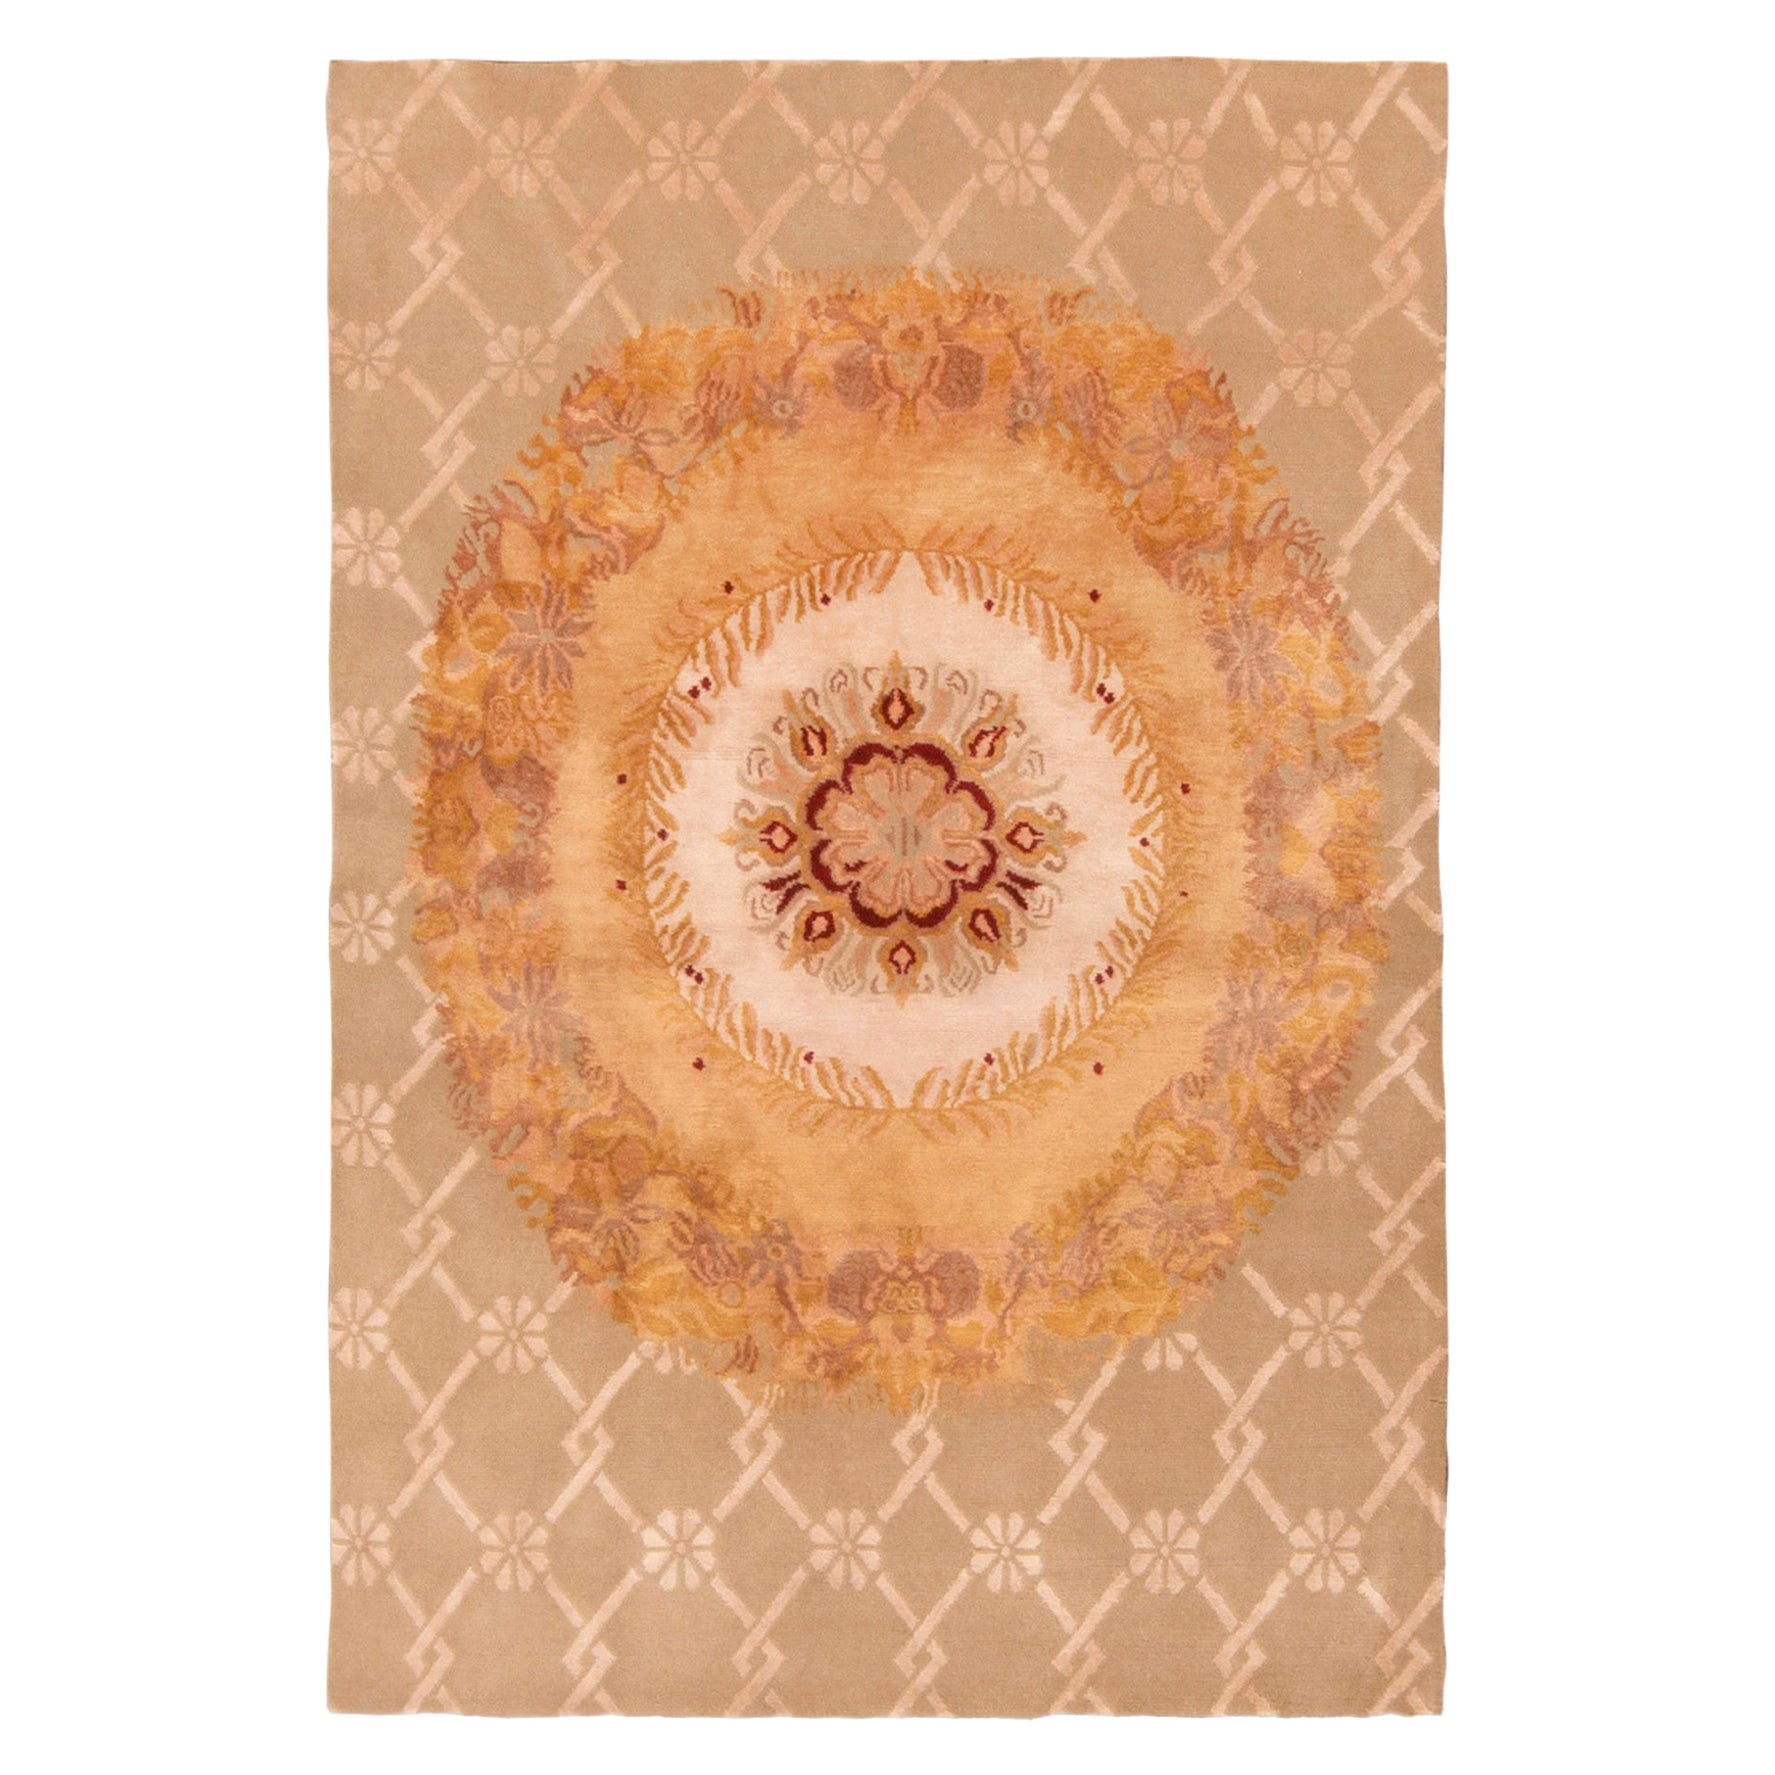 Rug & Kilim's Aubusson Inspired Floral Cream and Gold Wool and Silk Rug